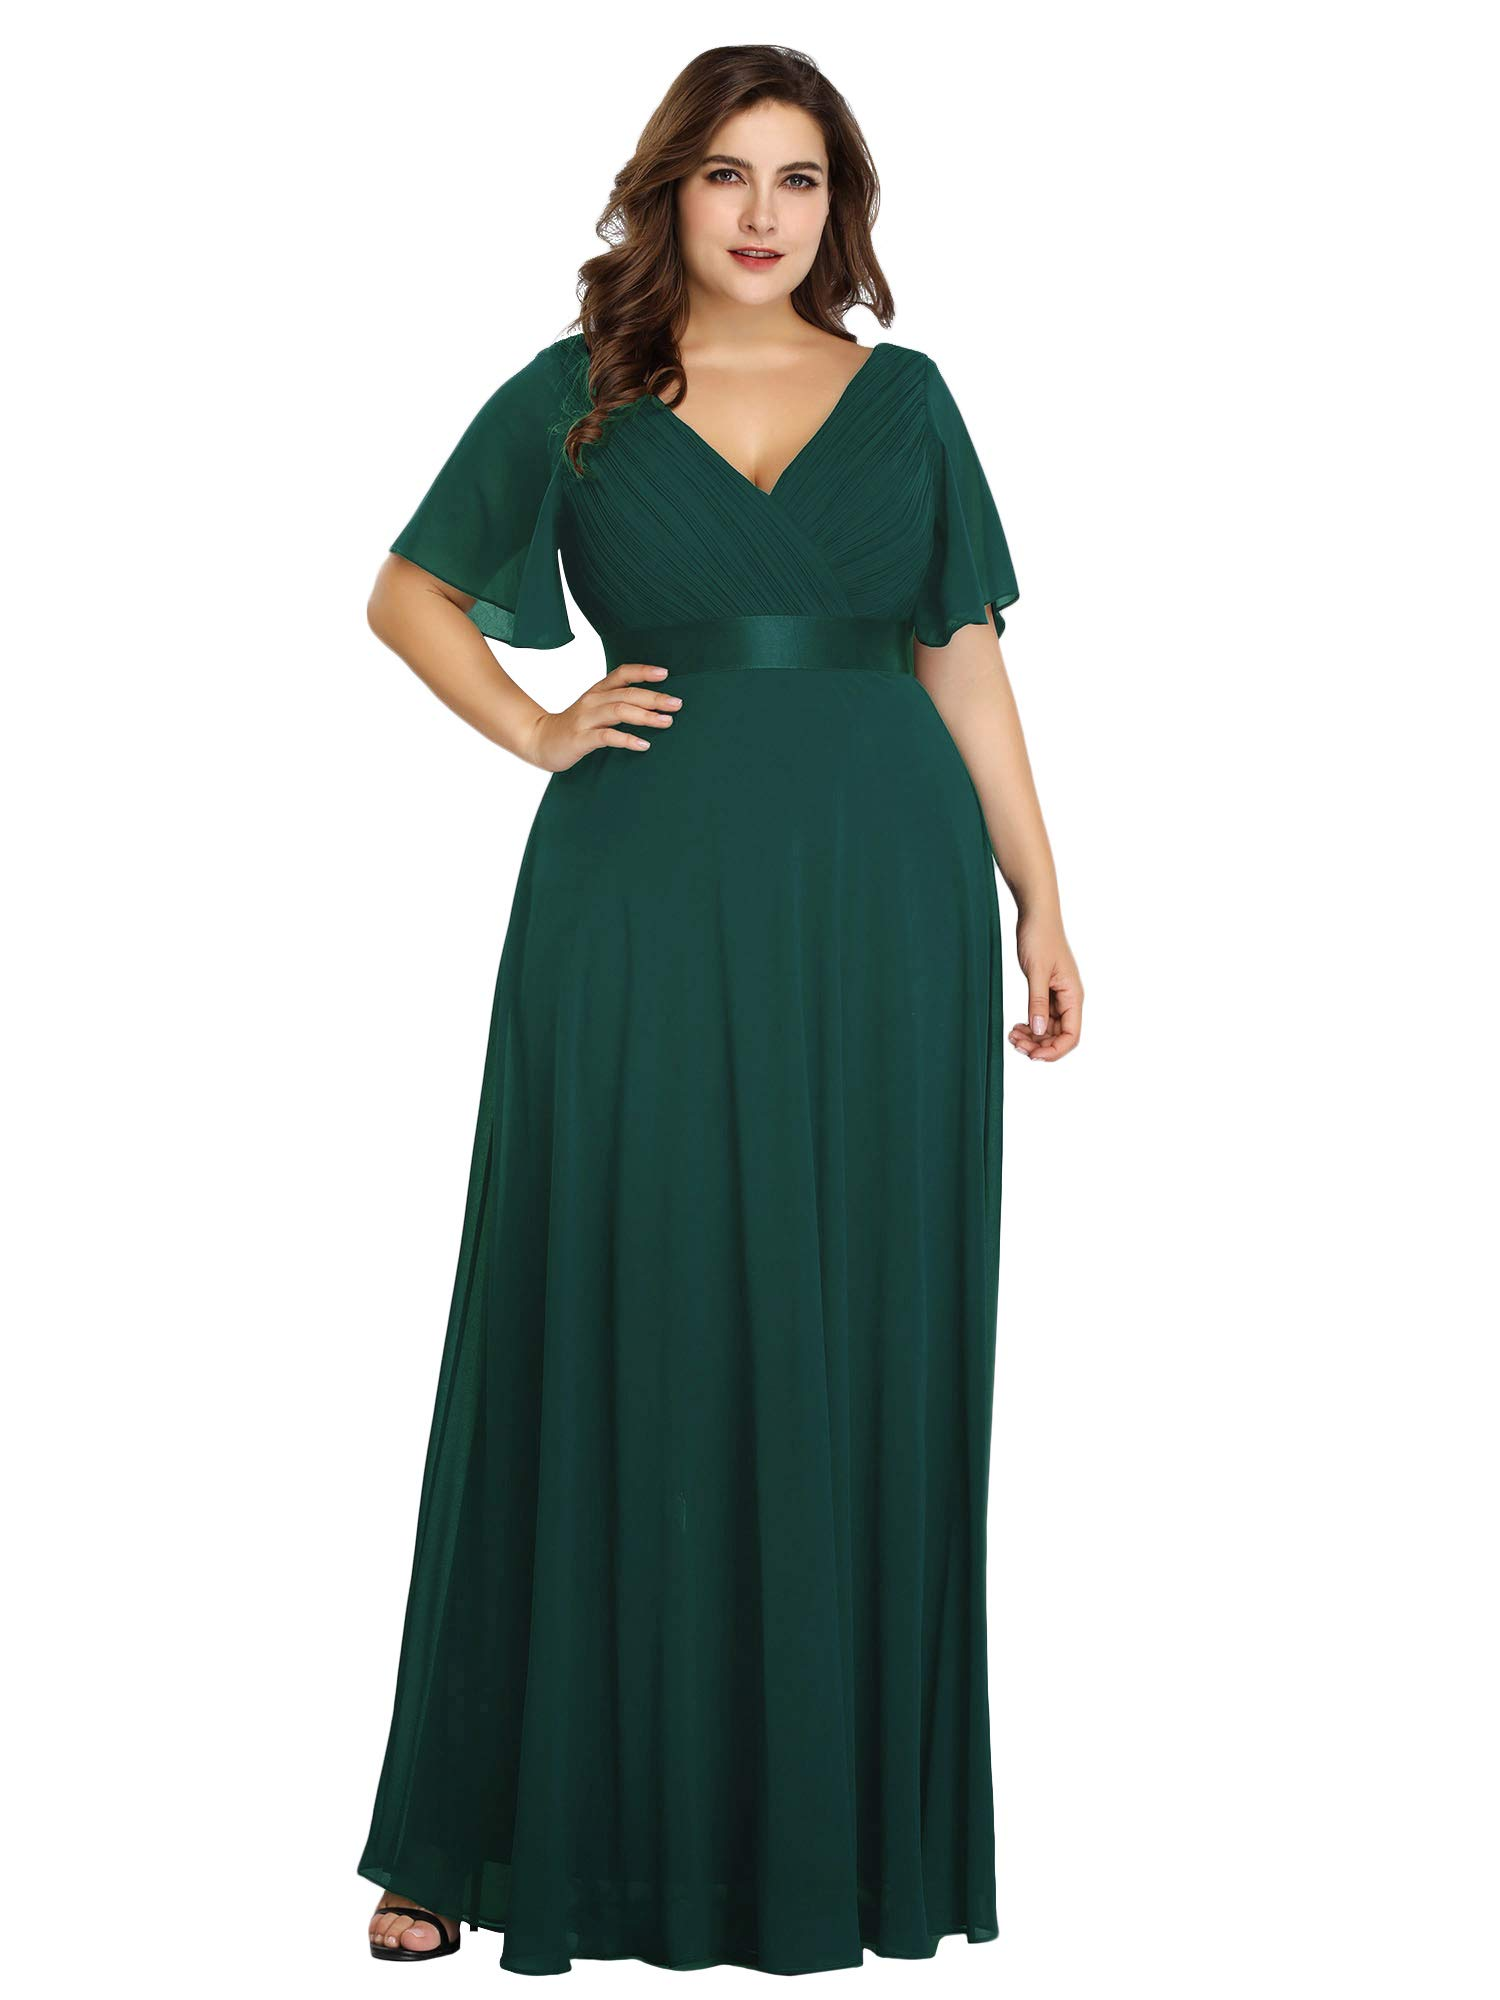 Alisapan Womens Chiffon Plus Size Long Formal Gowns Prom Evening Dresses  Green US18